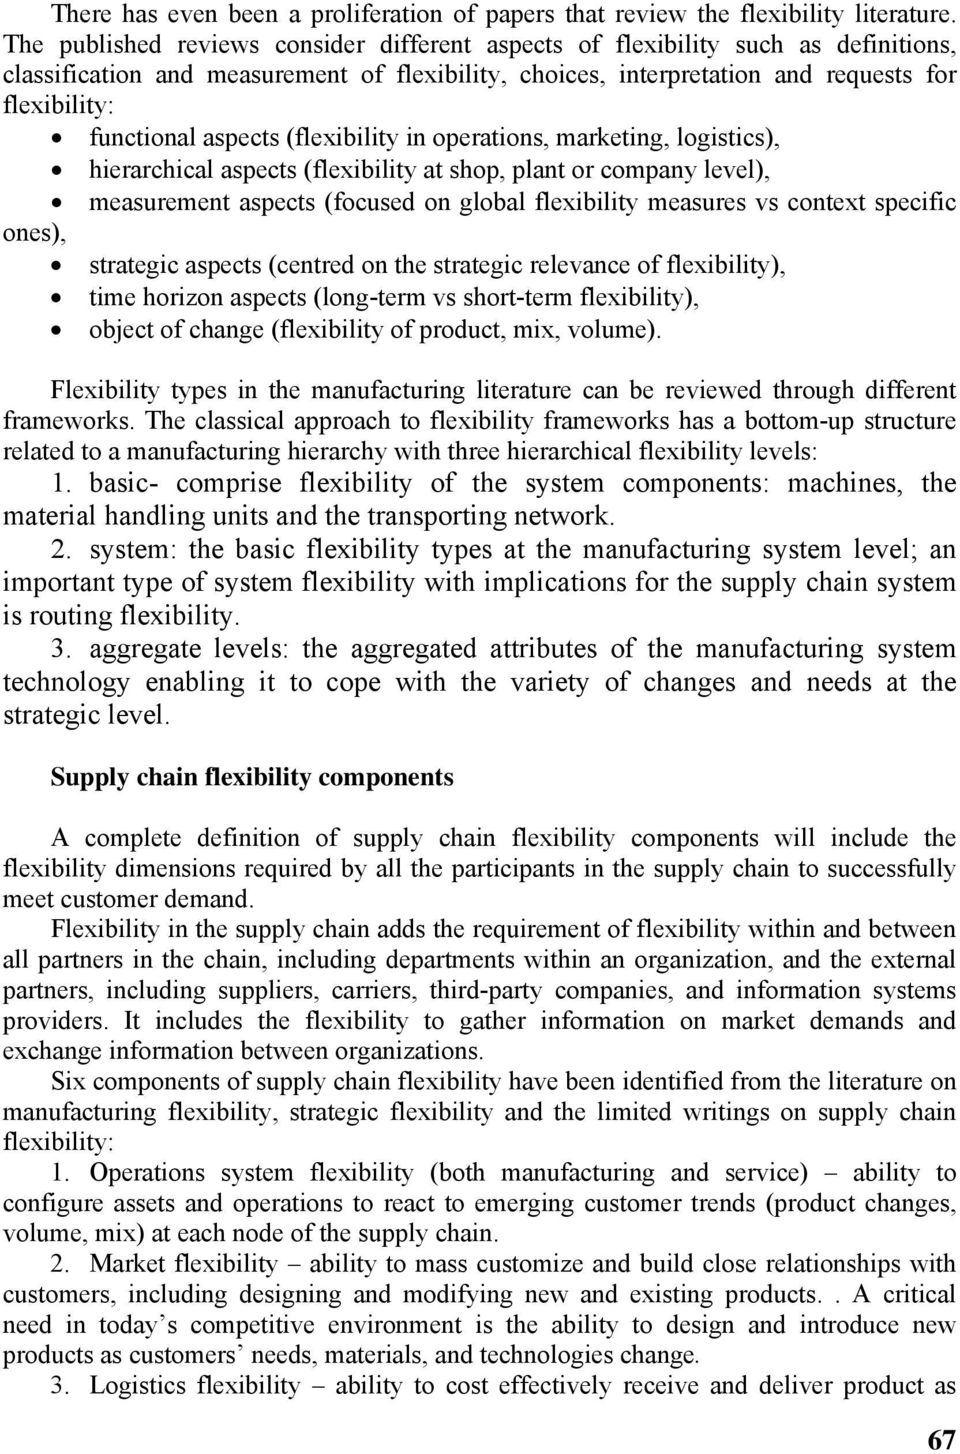 aspects (flexibility in operations, marketing, logistics), hierarchical aspects (flexibility at shop, plant or company level), measurement aspects (focused on global flexibility measures vs context